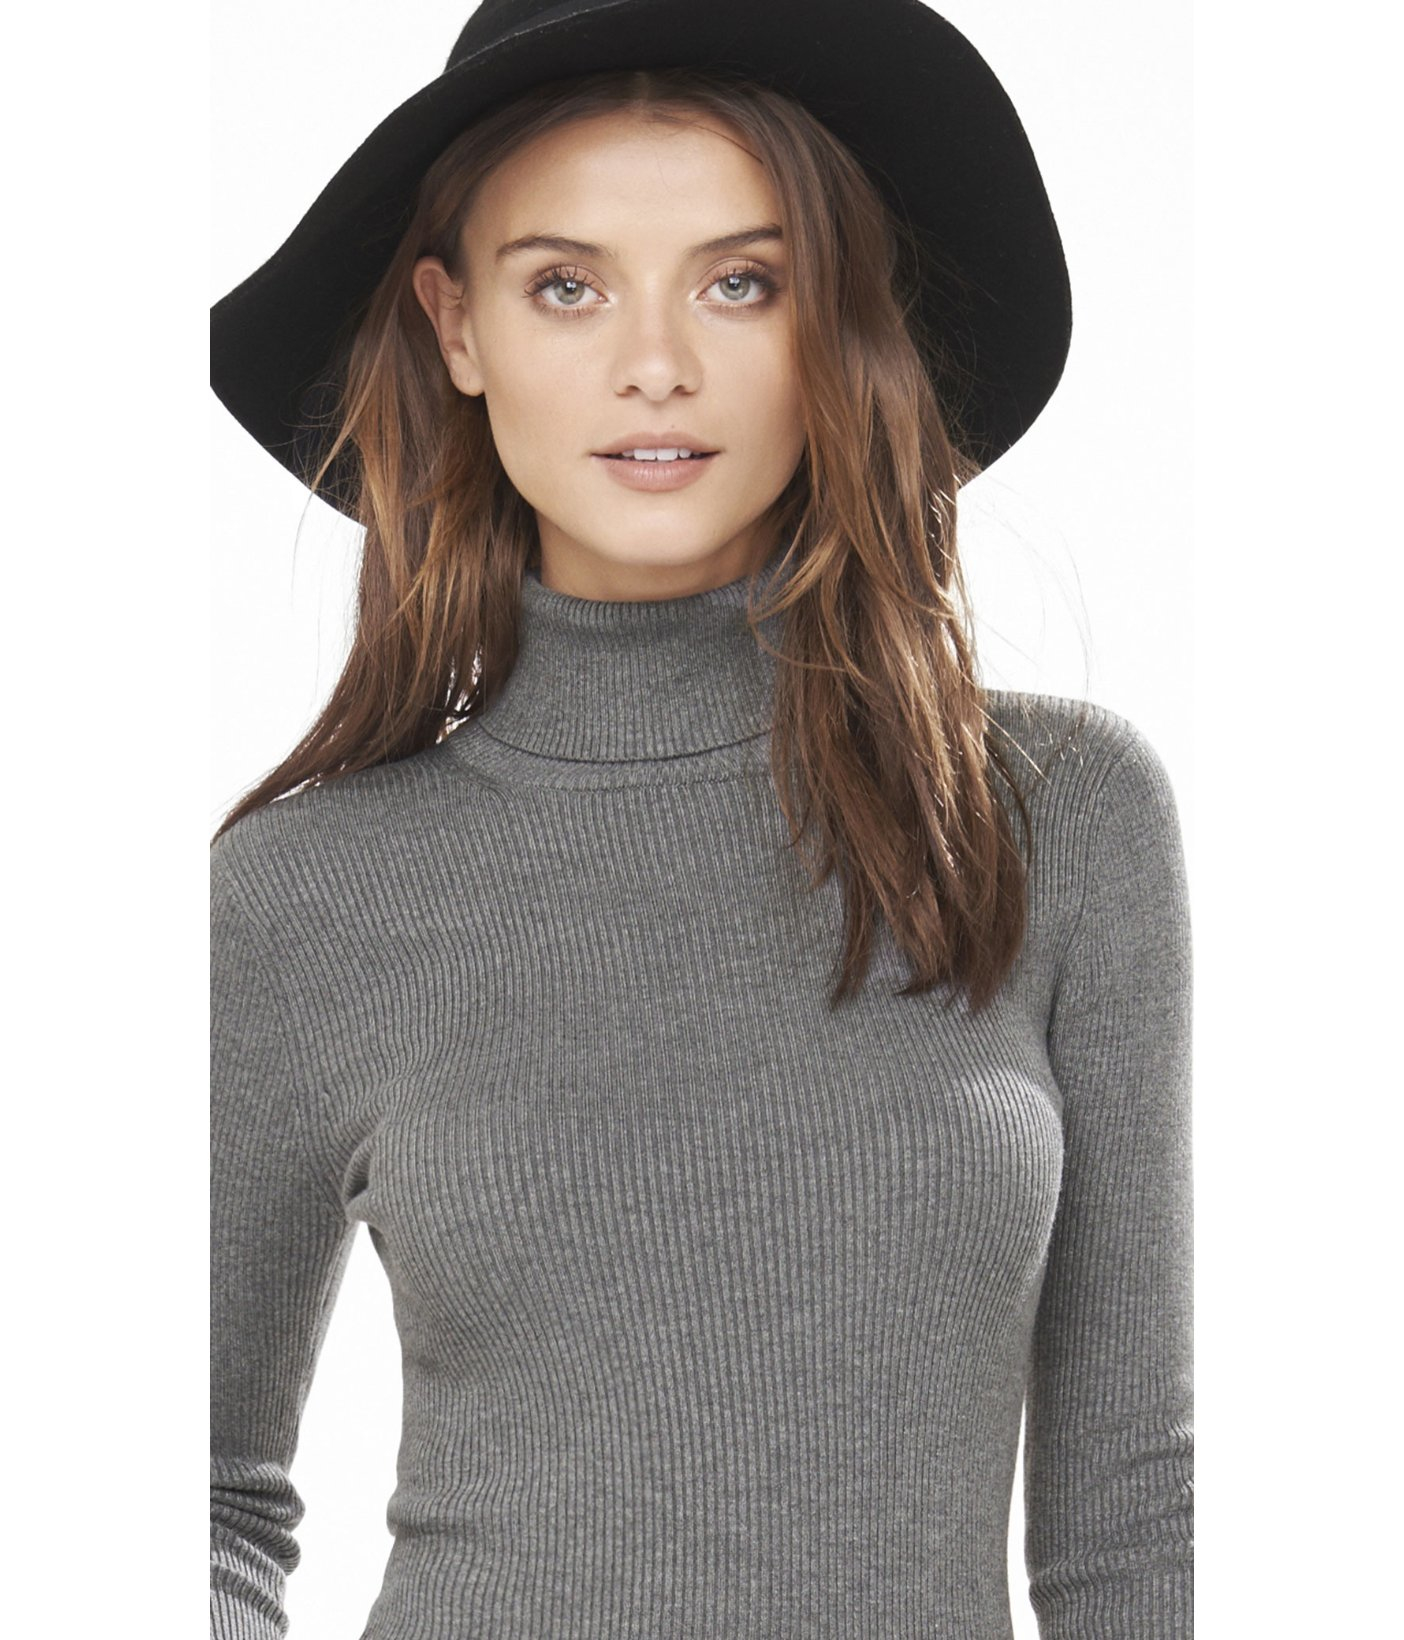 788e1d3c76b Lyst - Express Ribbed Turtleneck Sweater in Gray